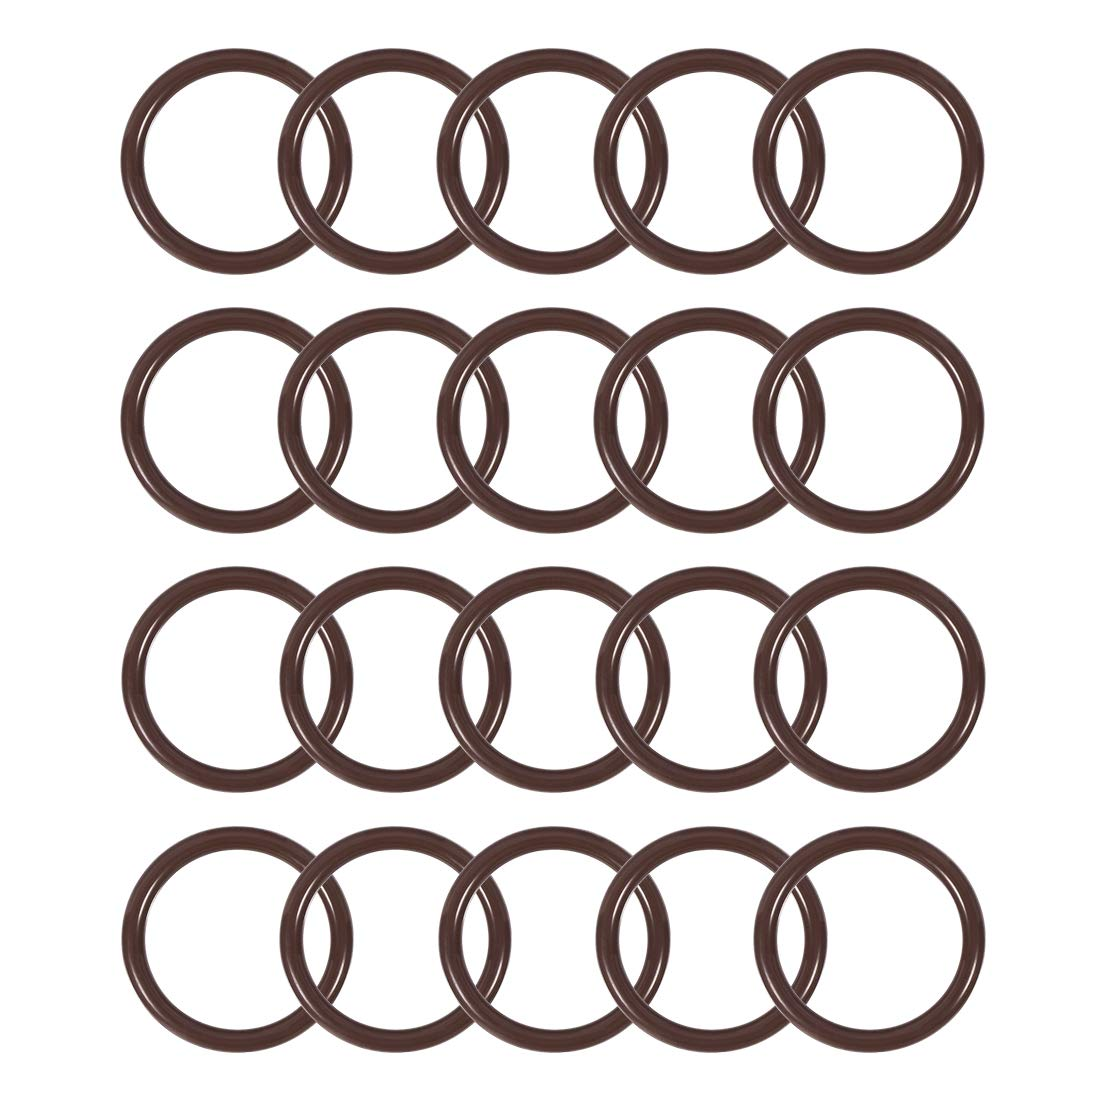 uxcell Fluorine Rubber O-Rings 13mm OD 8.2mm ID 2.4mm Width FKM Seal Gasket Brown 20pcs